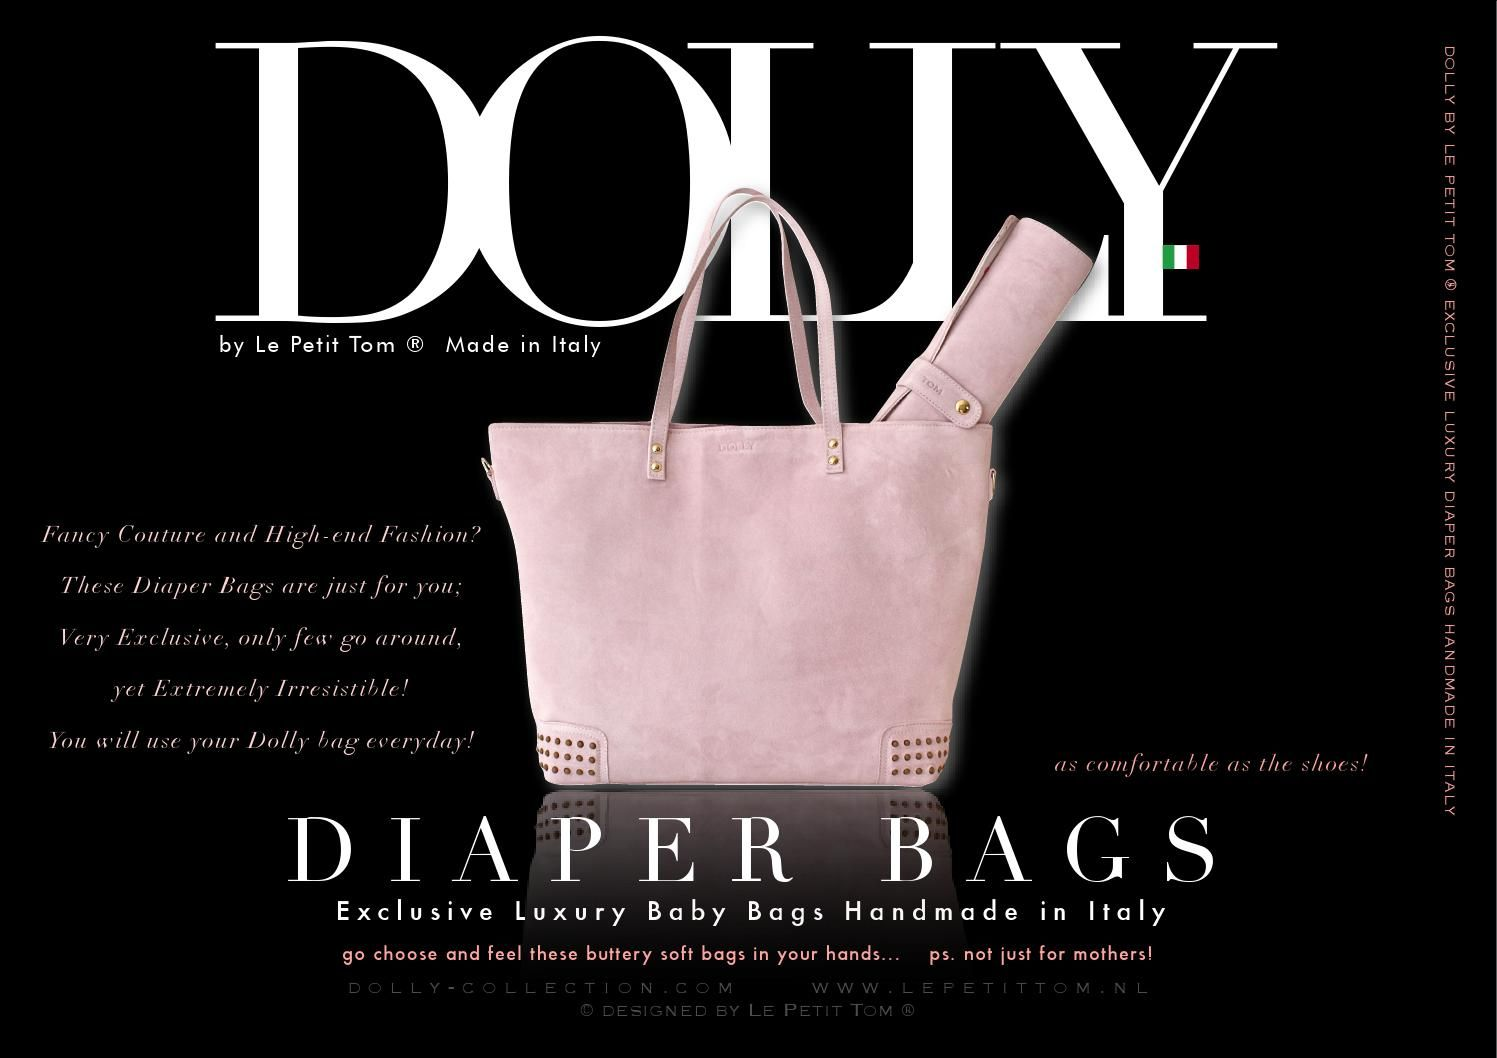 DOLLY Diaper Bags by Le Petit Tom ® Hand made in Italy